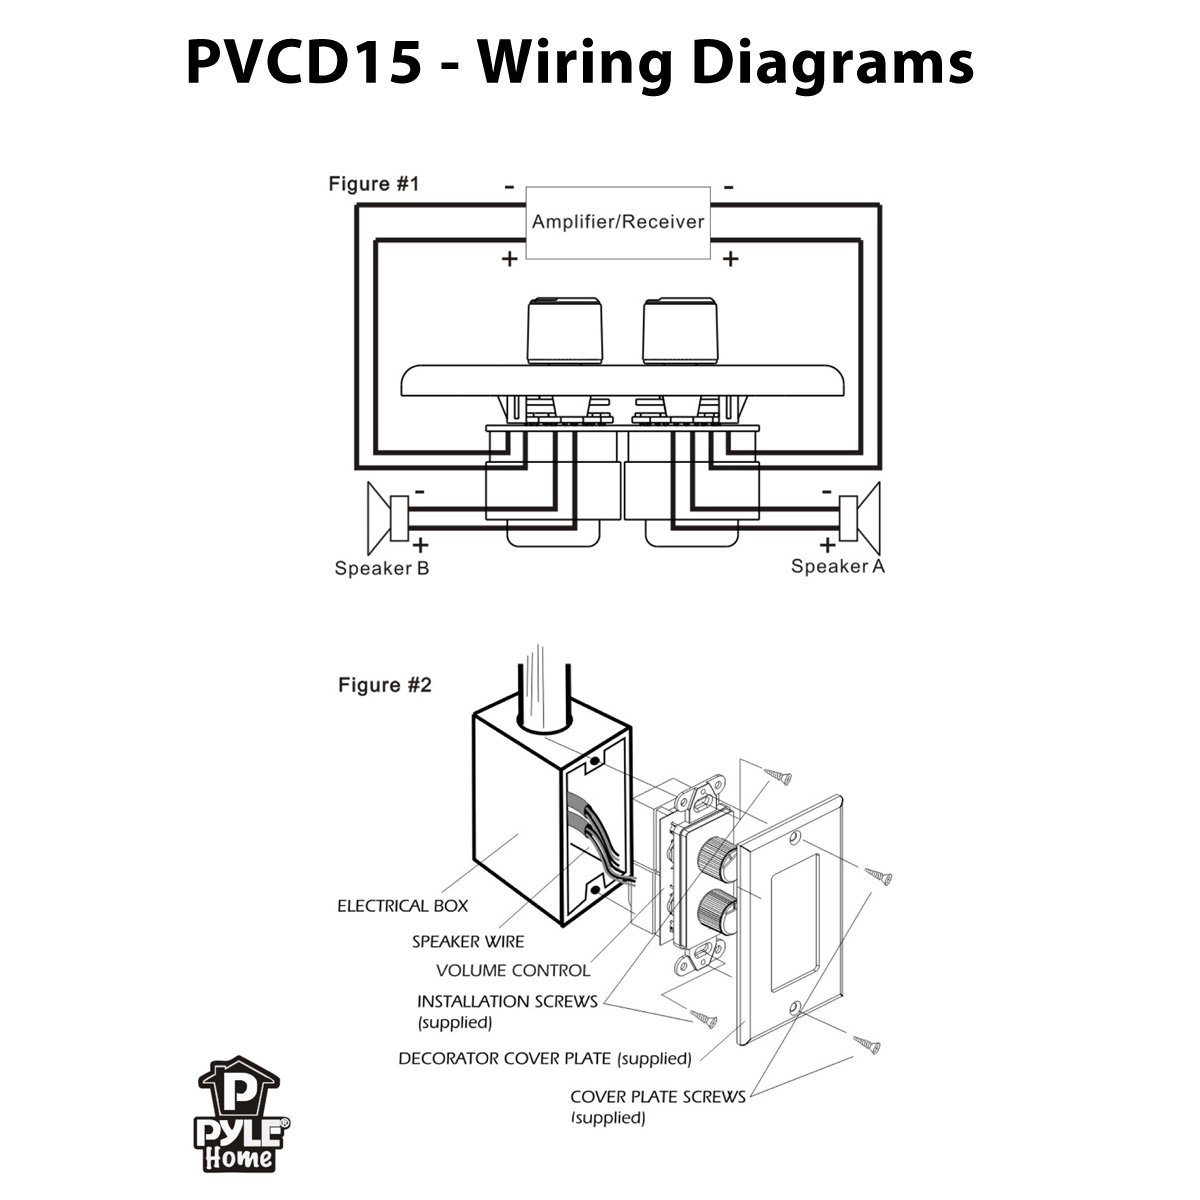 61Ncb6E88oL._SL1200_ amazon com pylehome pvcd15 in wall two right and left speaker home theater speaker wiring diagrams at creativeand.co